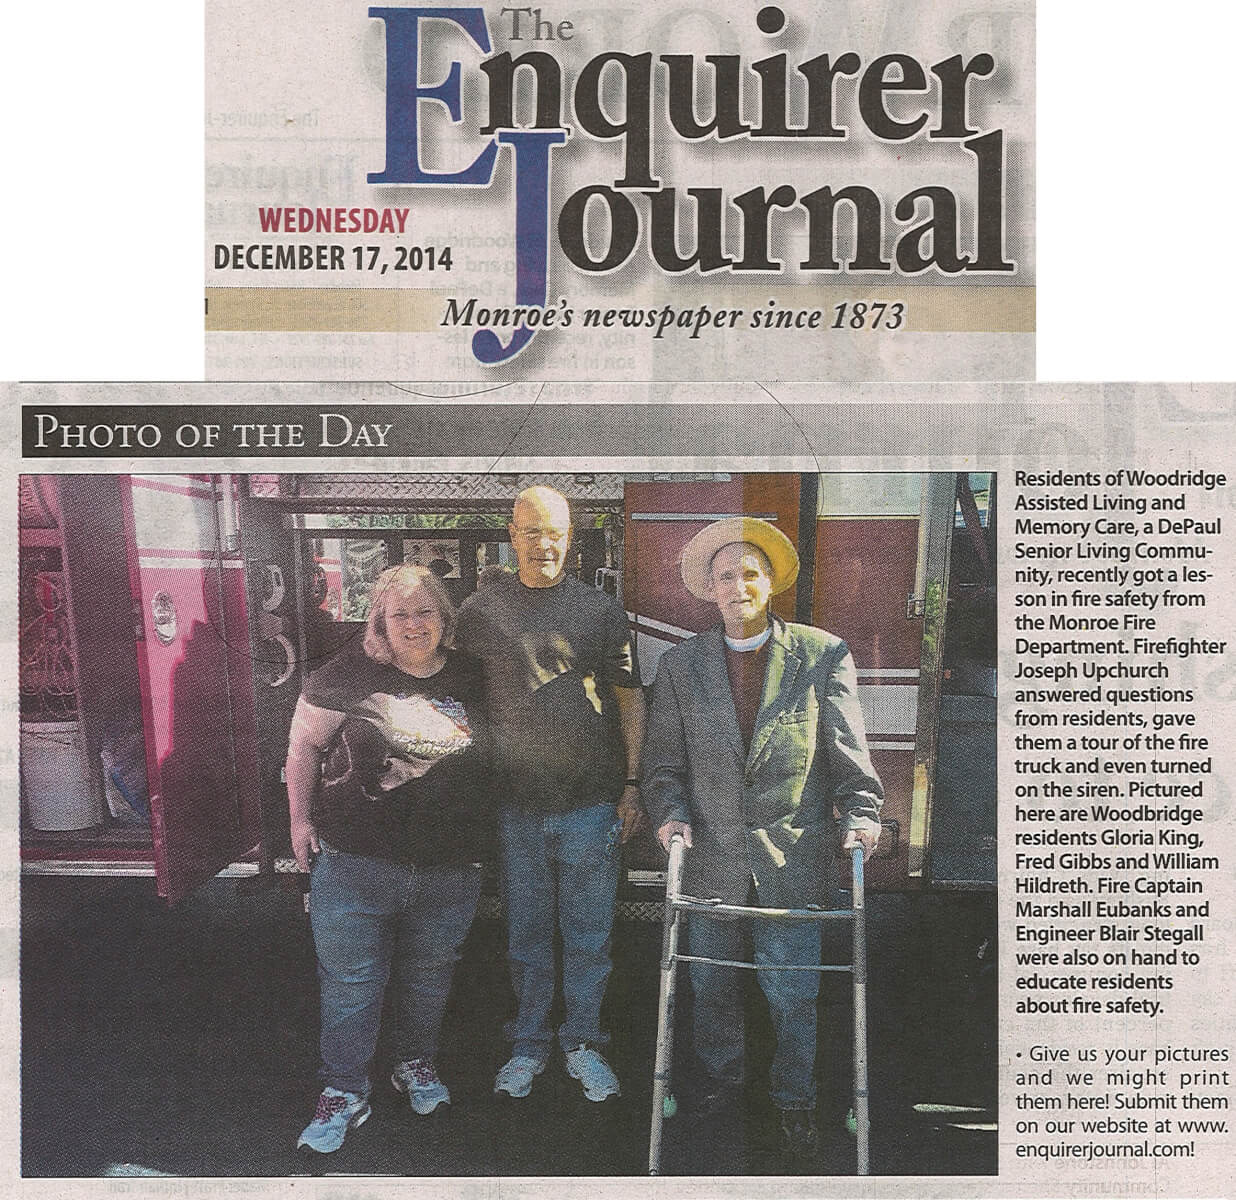 Woodridge Senior Living practices Fire Safety, article in the Enquirer Journal December 17, 2014